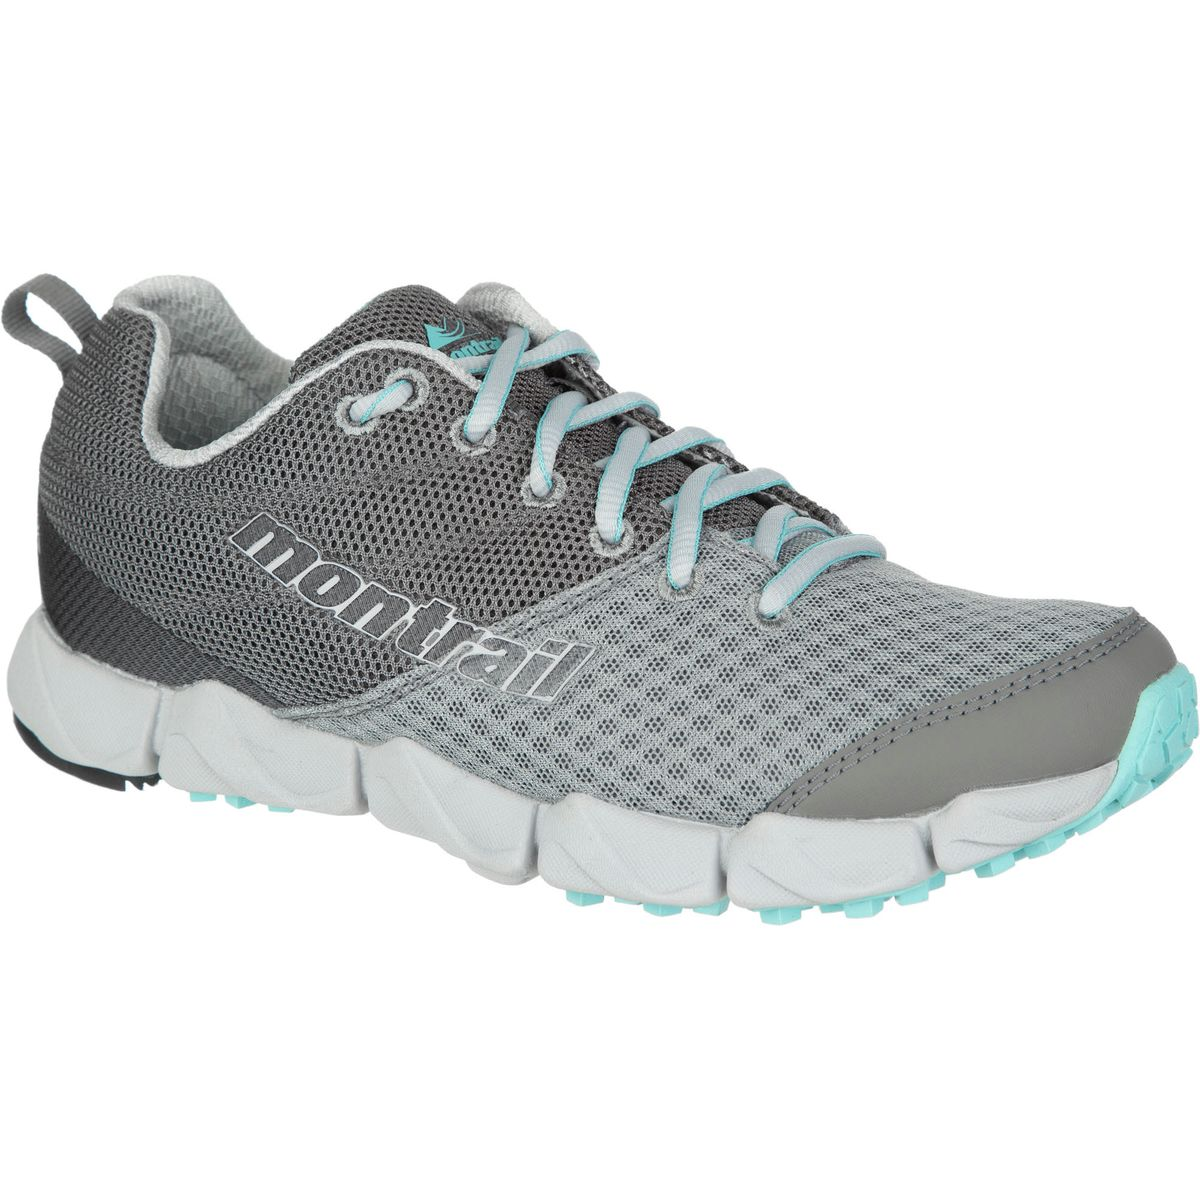 photo of a Montrail footwear product